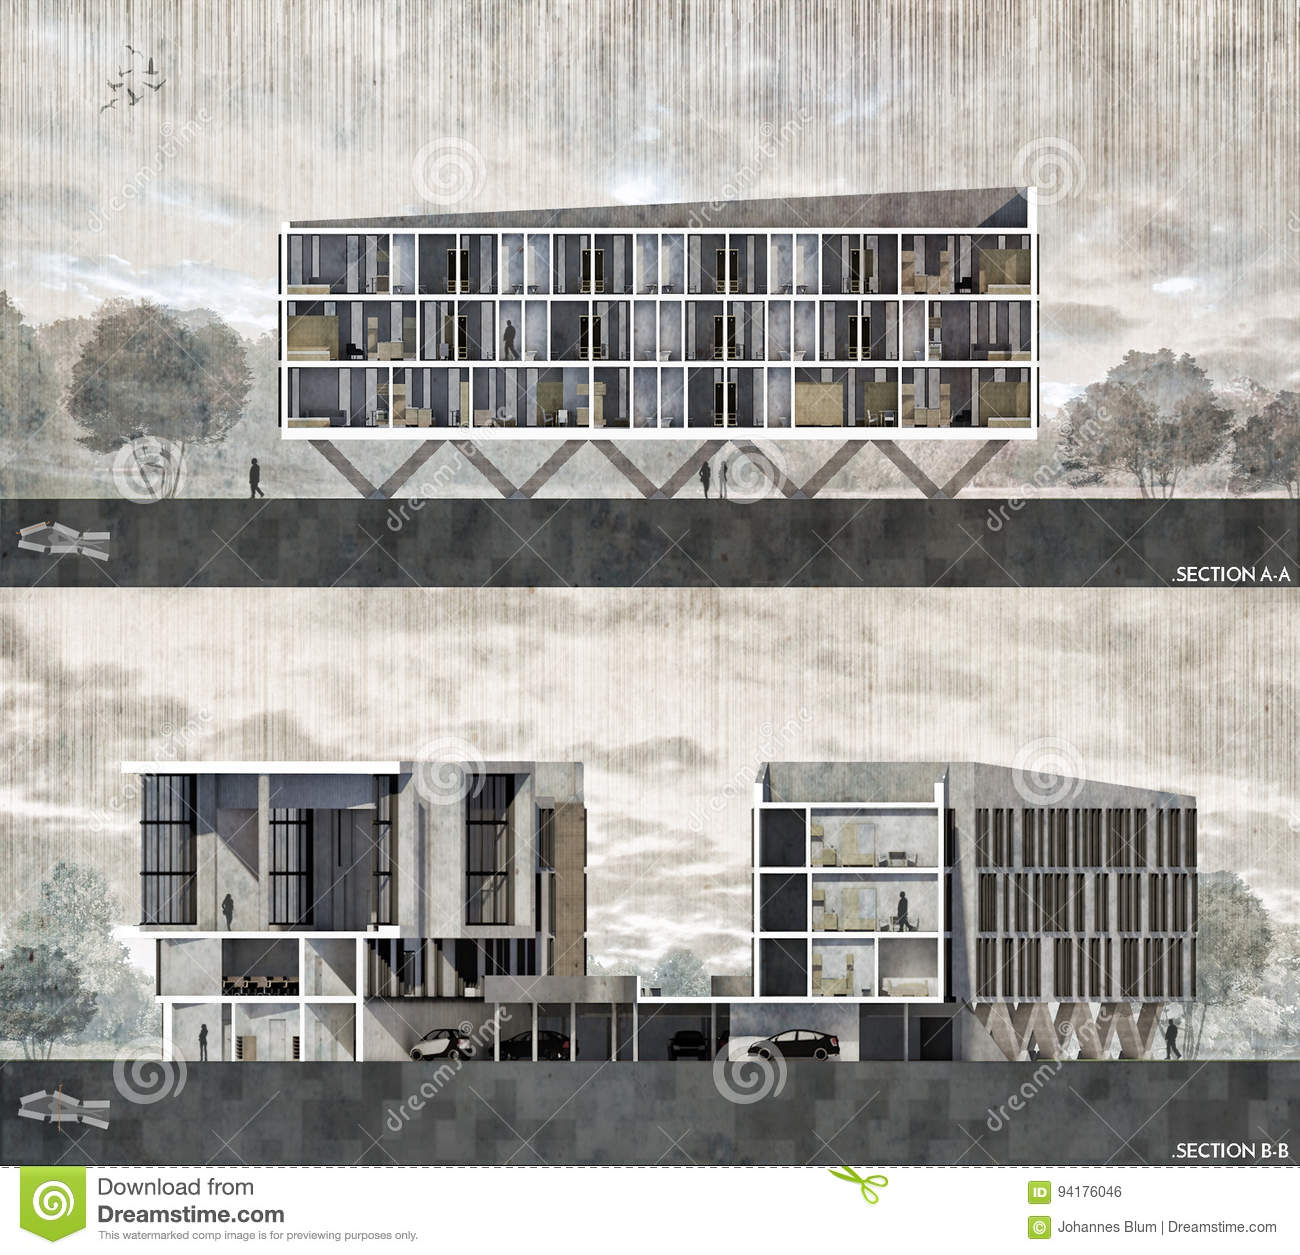 Architectural section rendering stock illustration for Rendering gratis